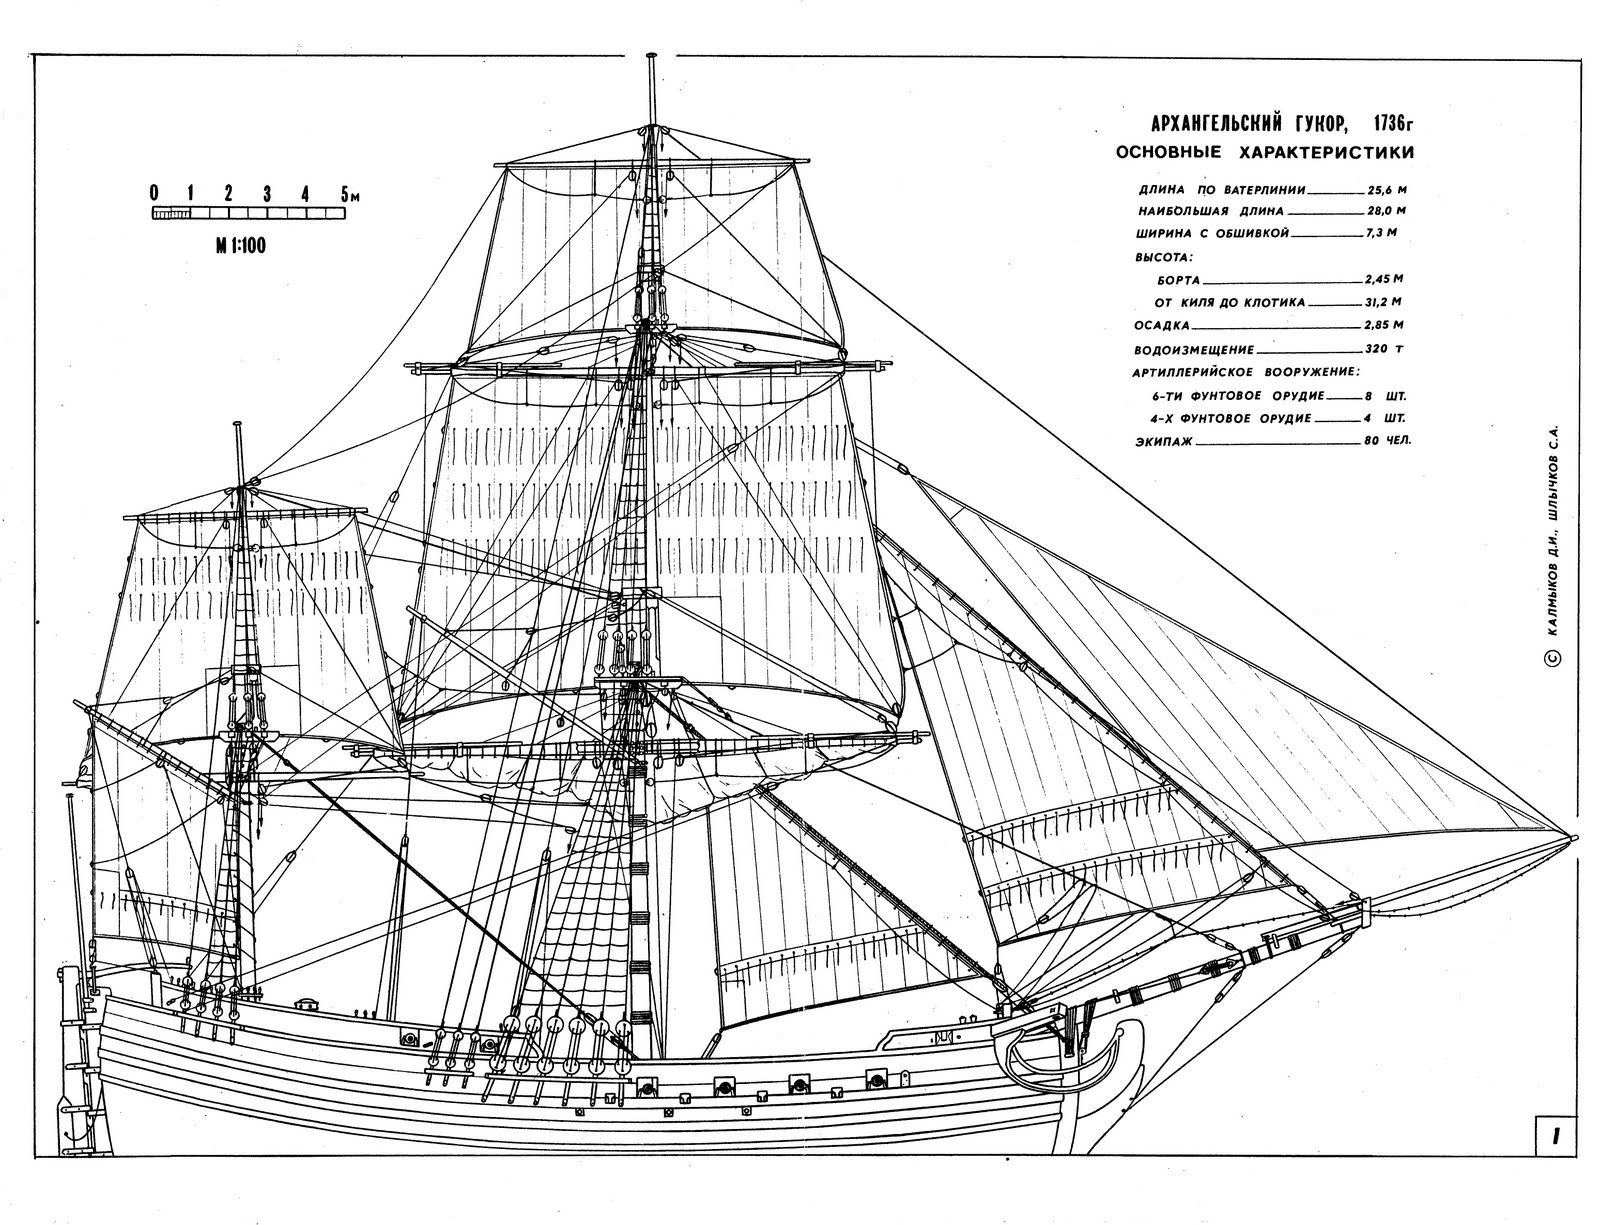 Wooden Ship Diagram - Residential Electrical Symbols •